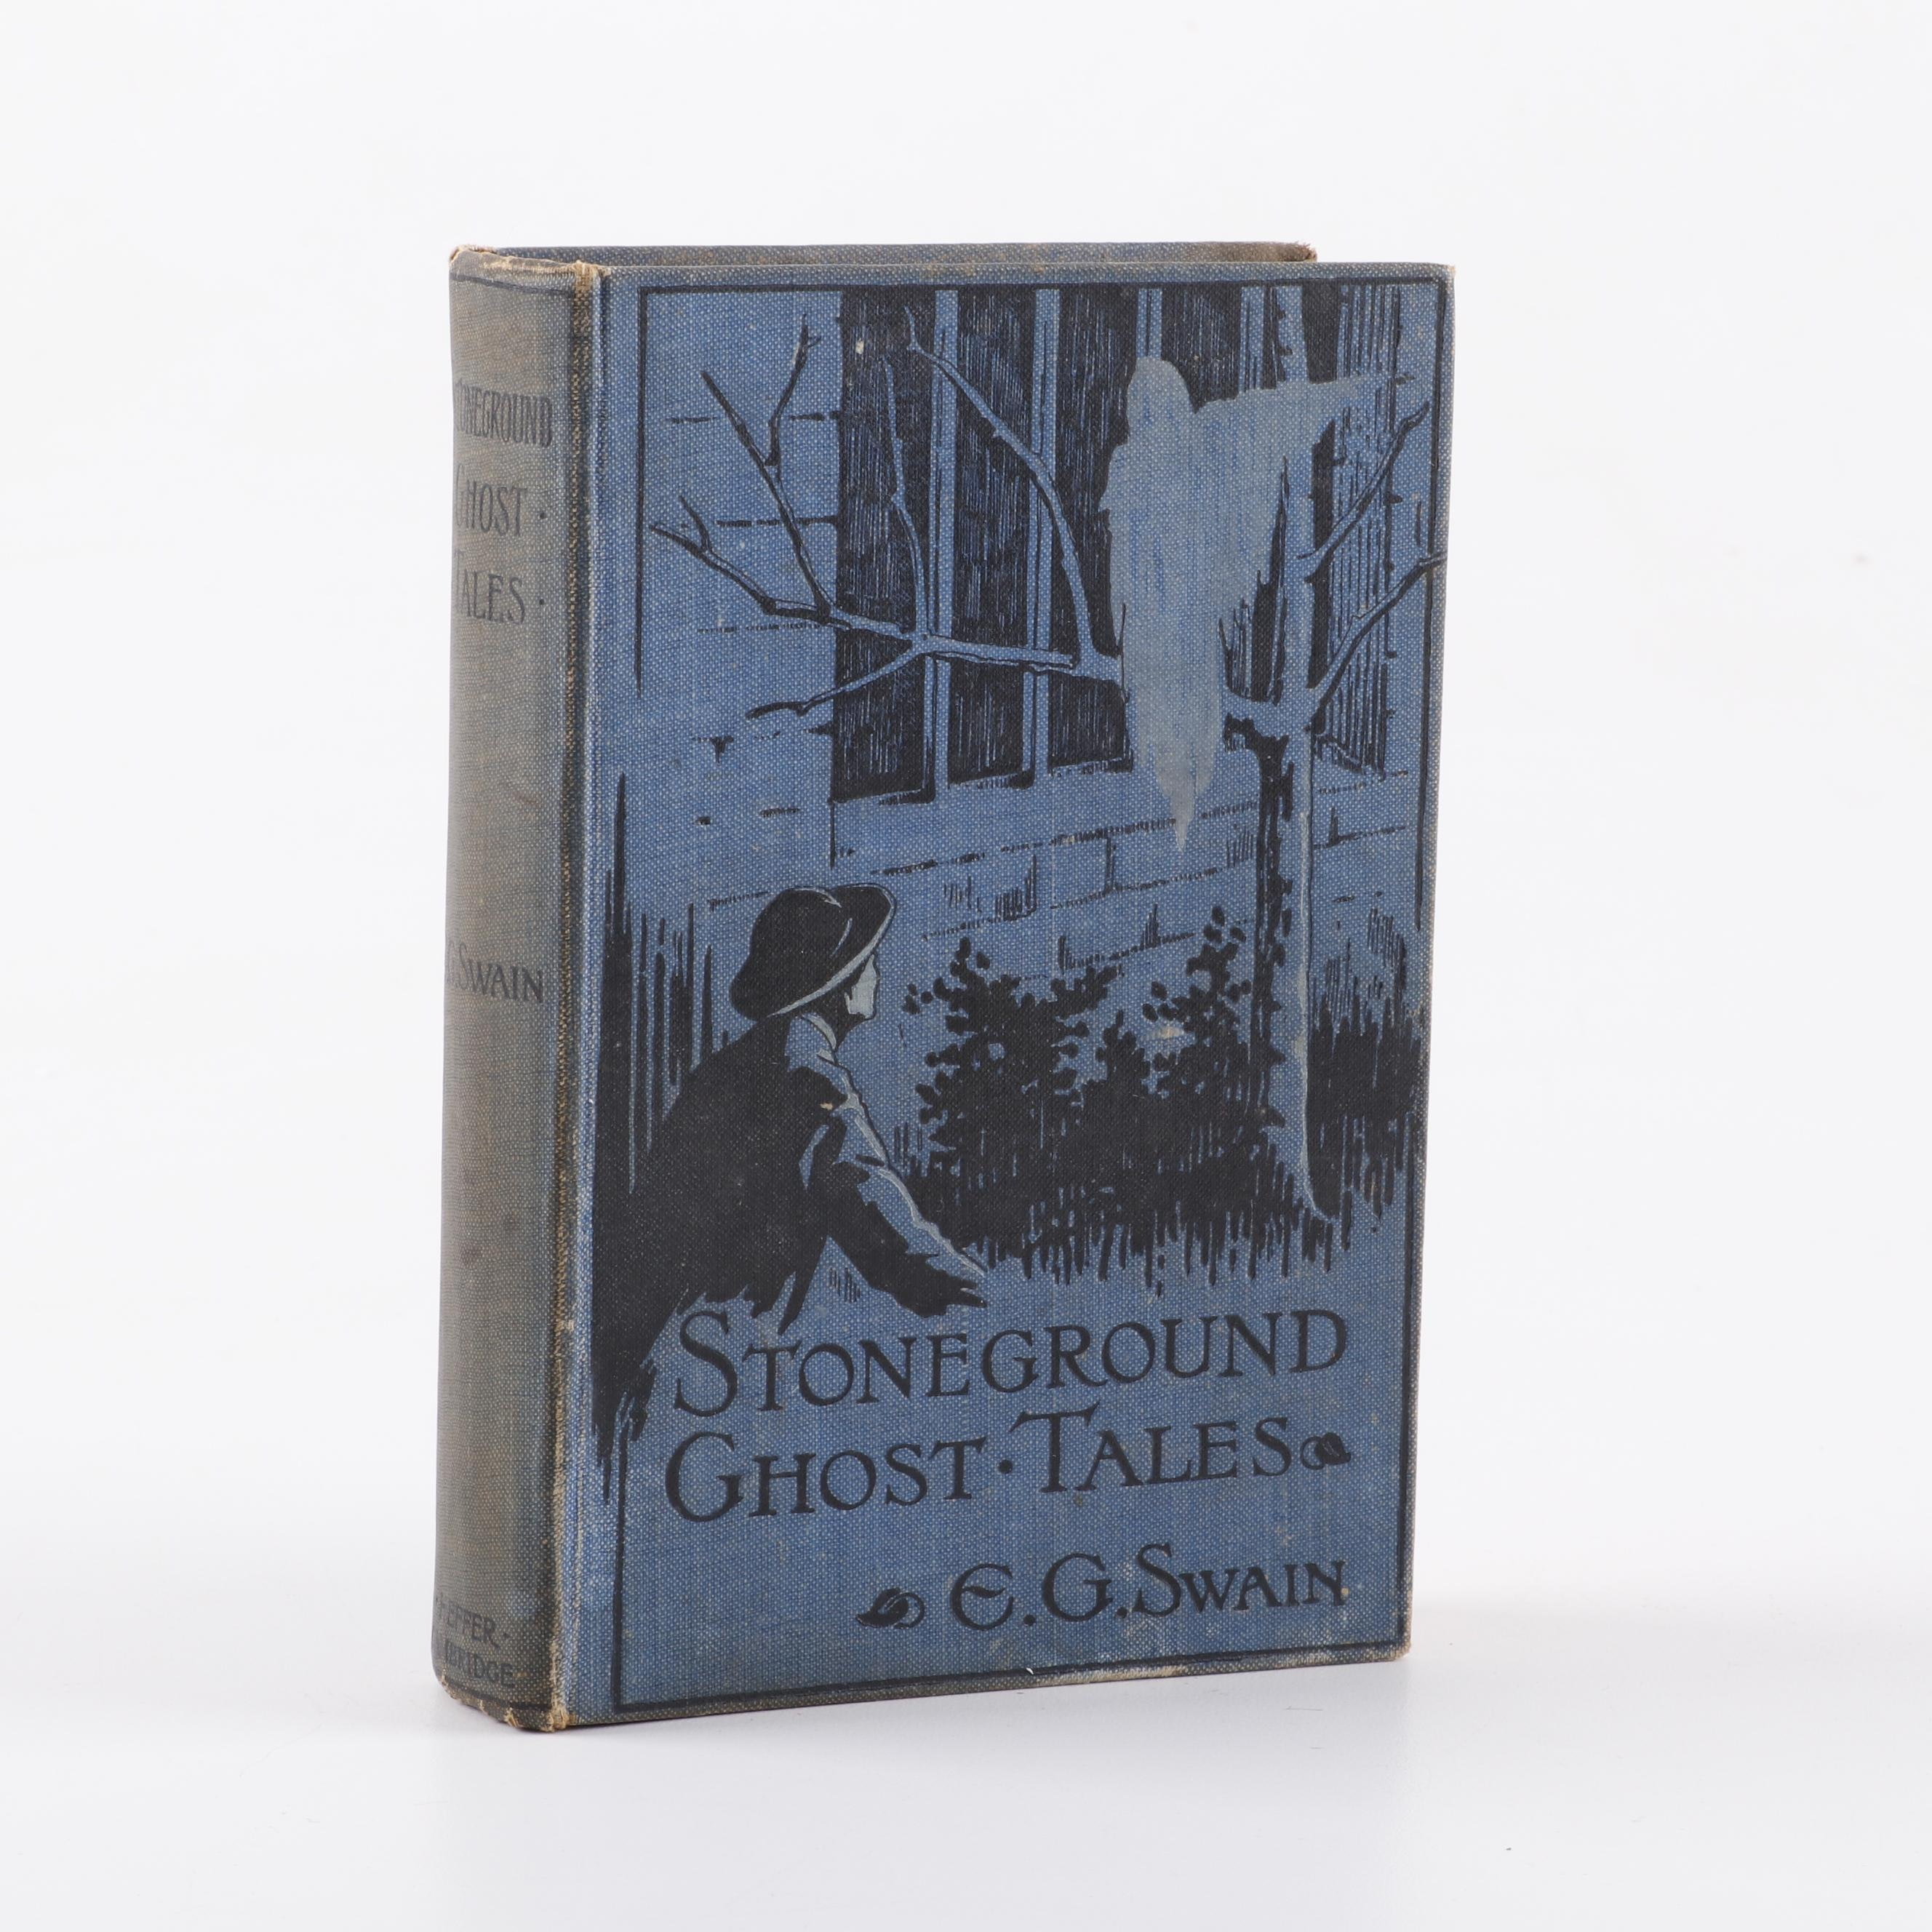 """The Stoneground Ghost Tales"" by E.G. Swain, 1912"